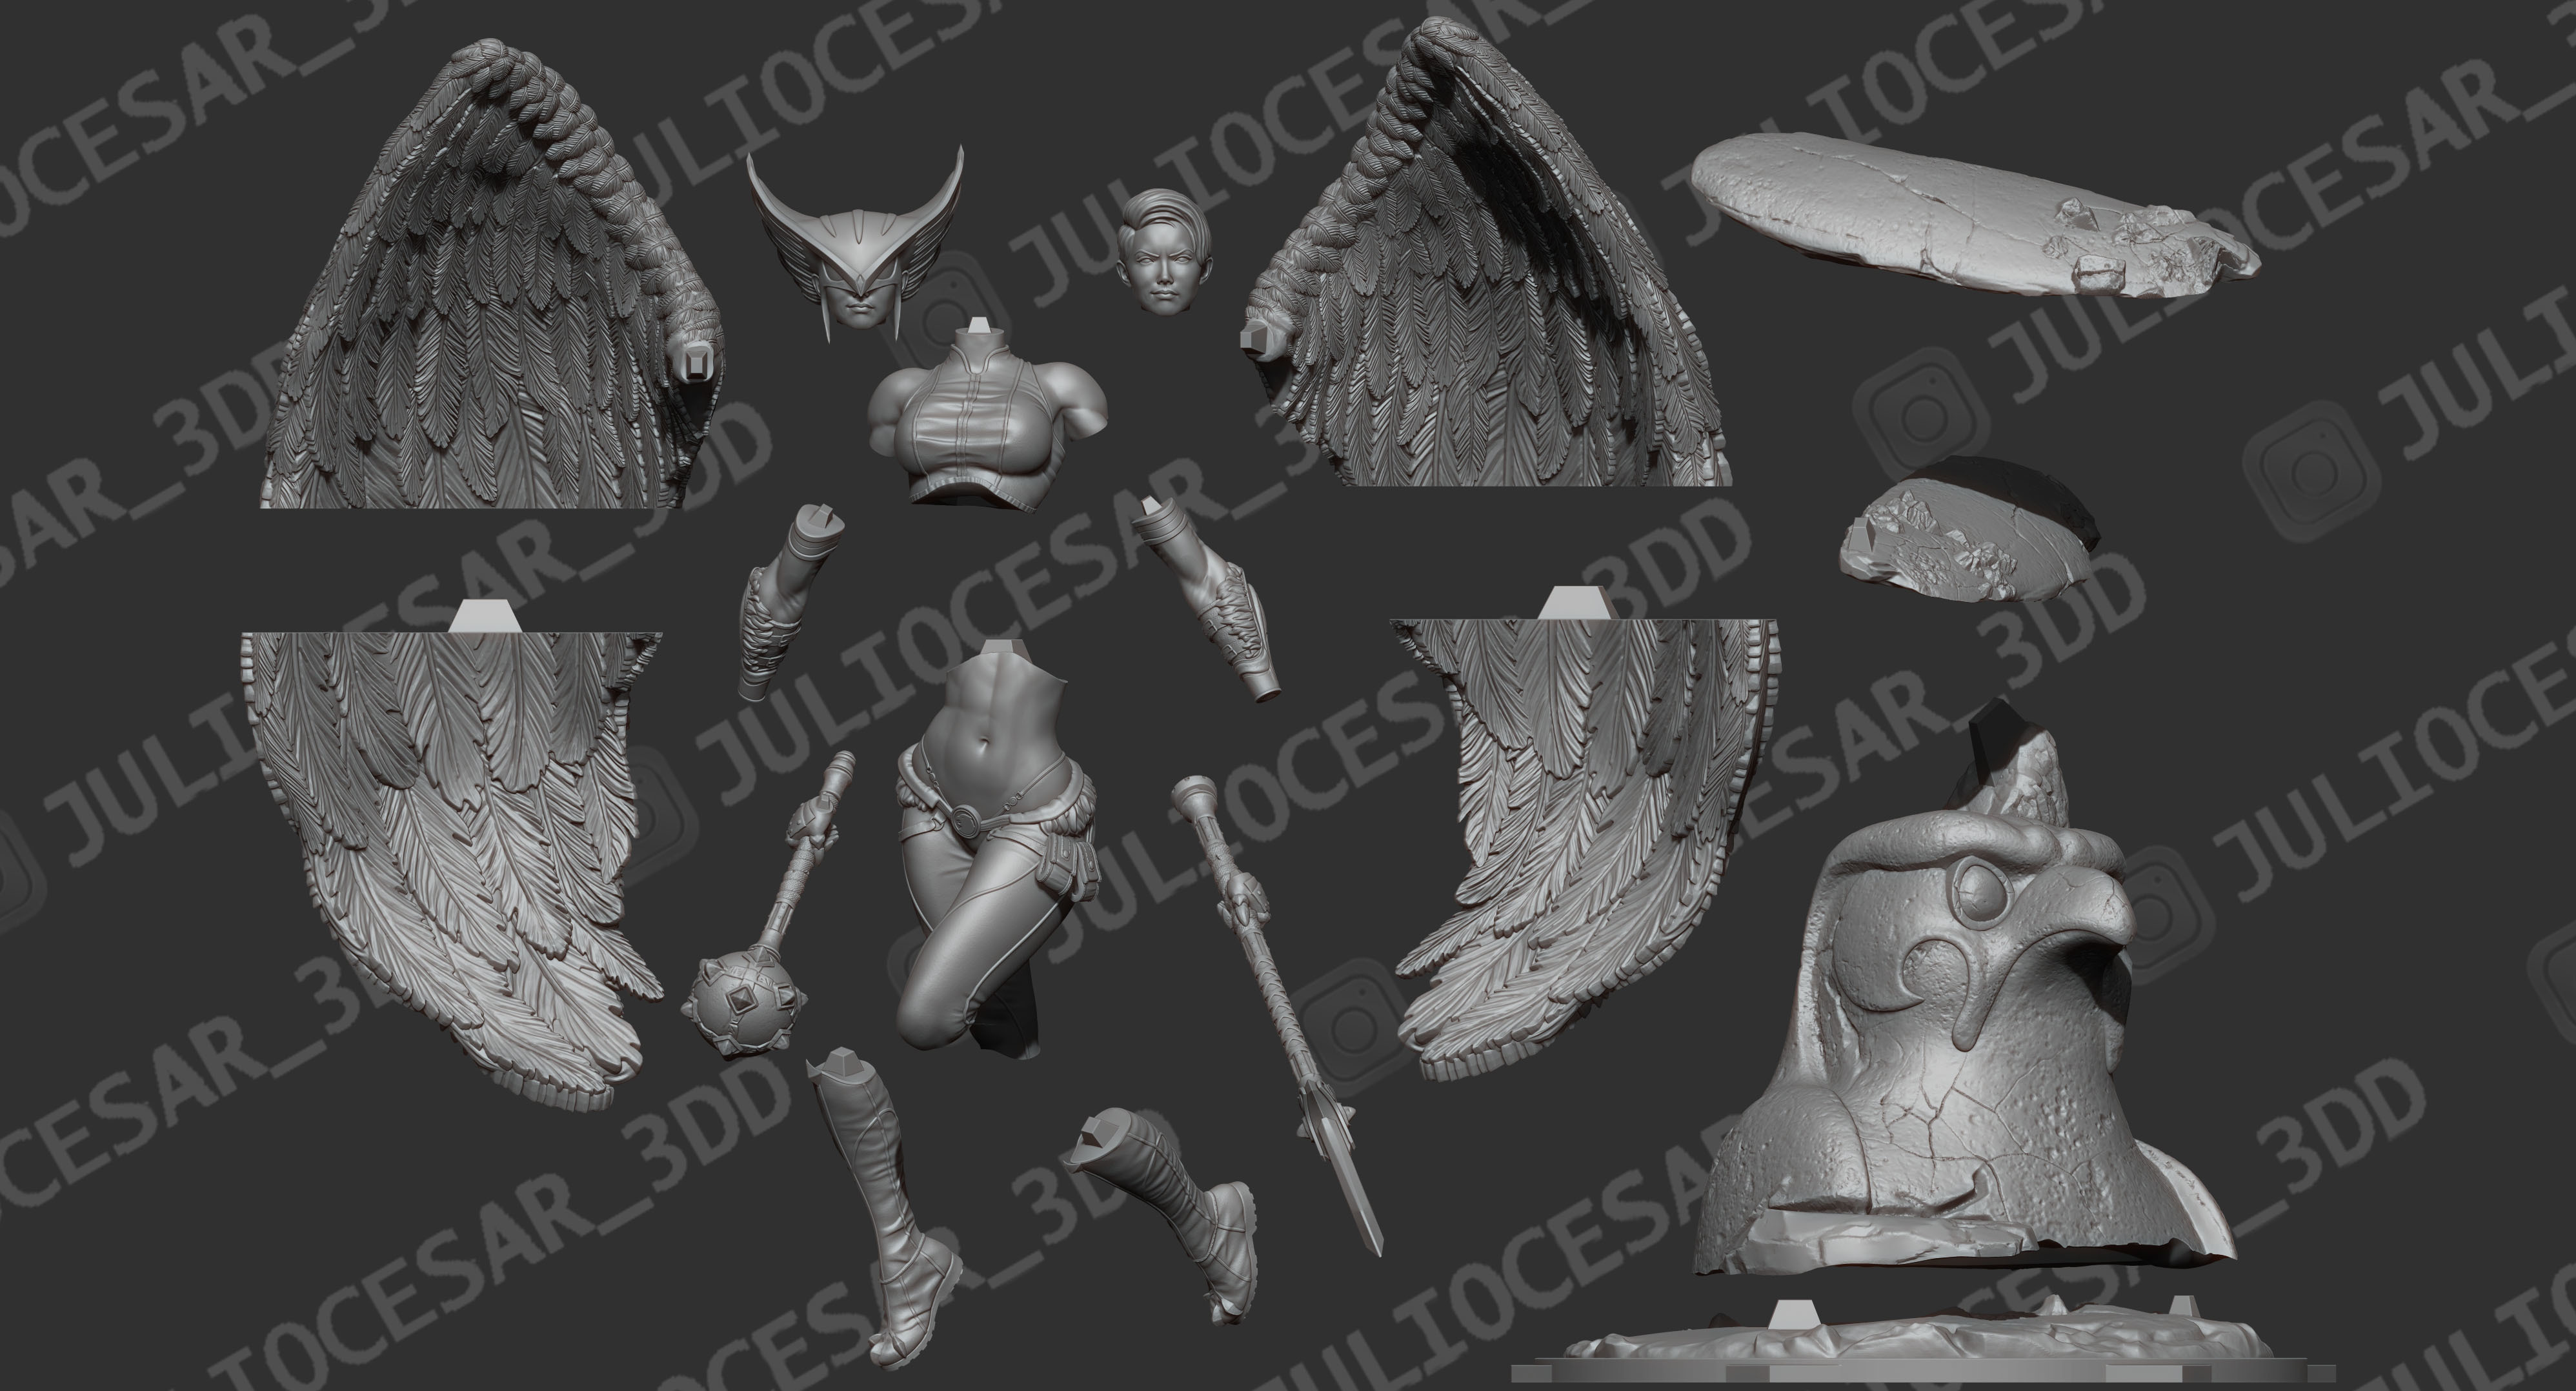 r4ma.jpg Download STL file HawkGirl • 3D printable template, JulioCesar_3DD